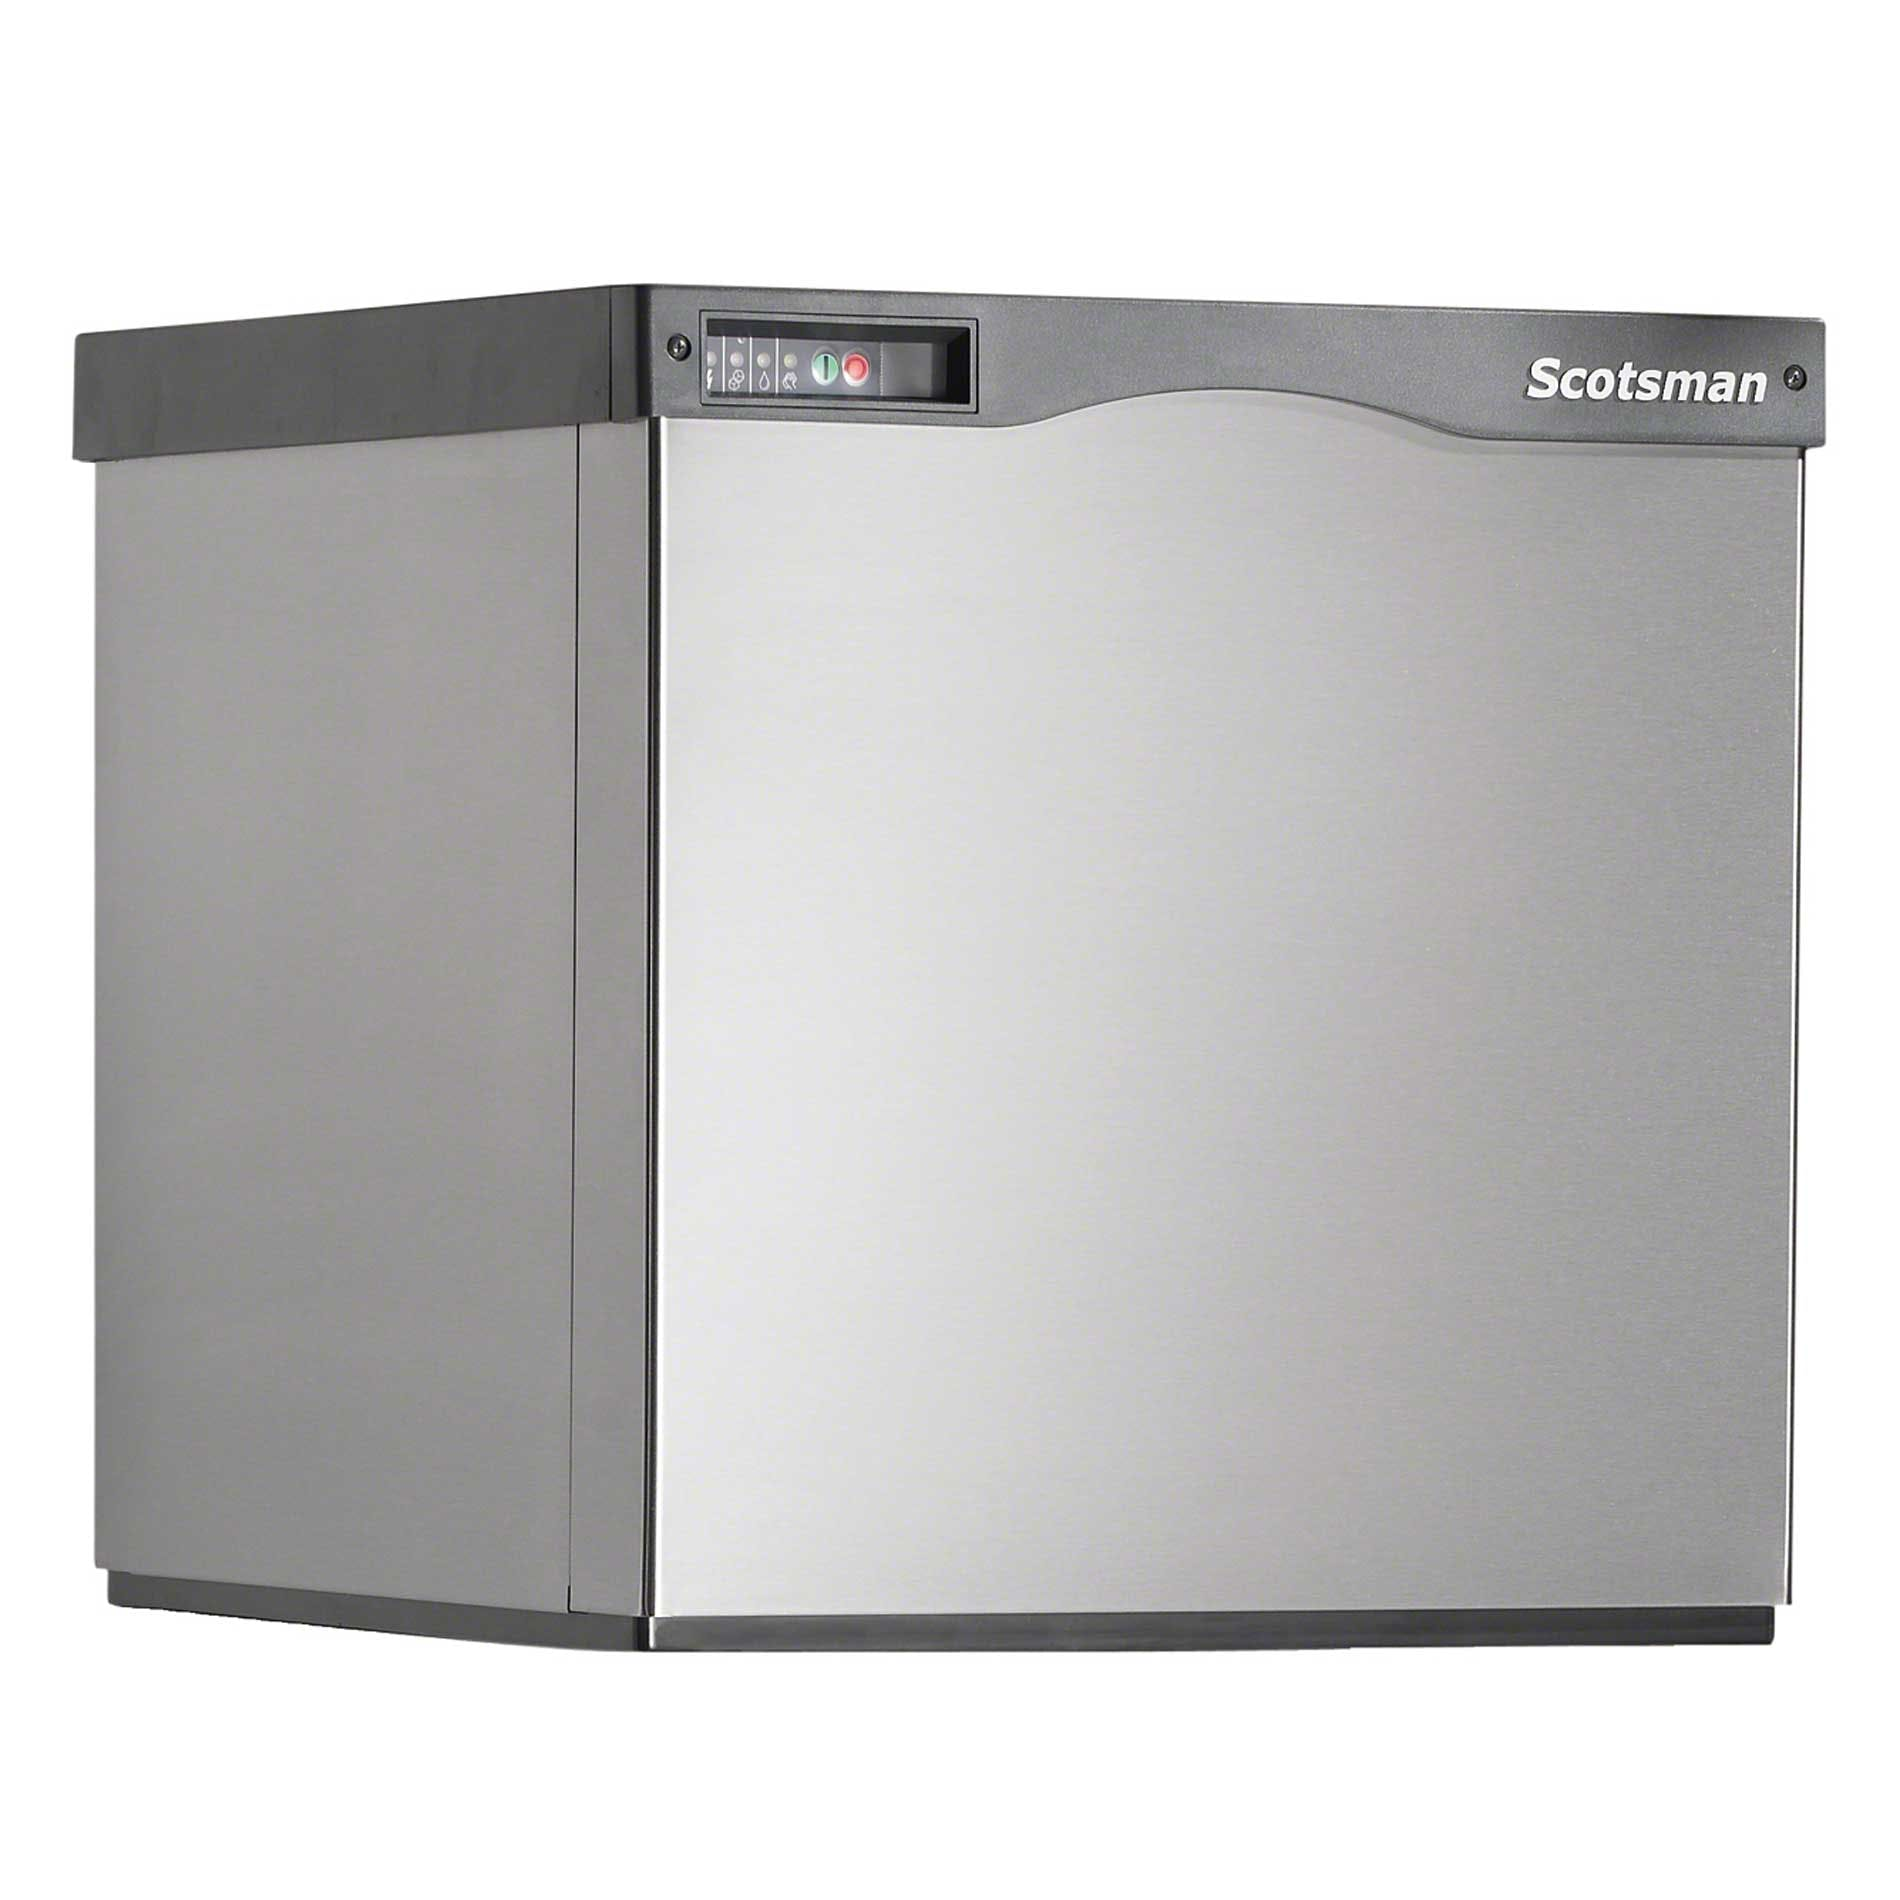 Scotsman - F0822R-1 800 lb Modular Flake Ice Machine - Prodigy® Series Ice machine sold by Food Service Warehouse